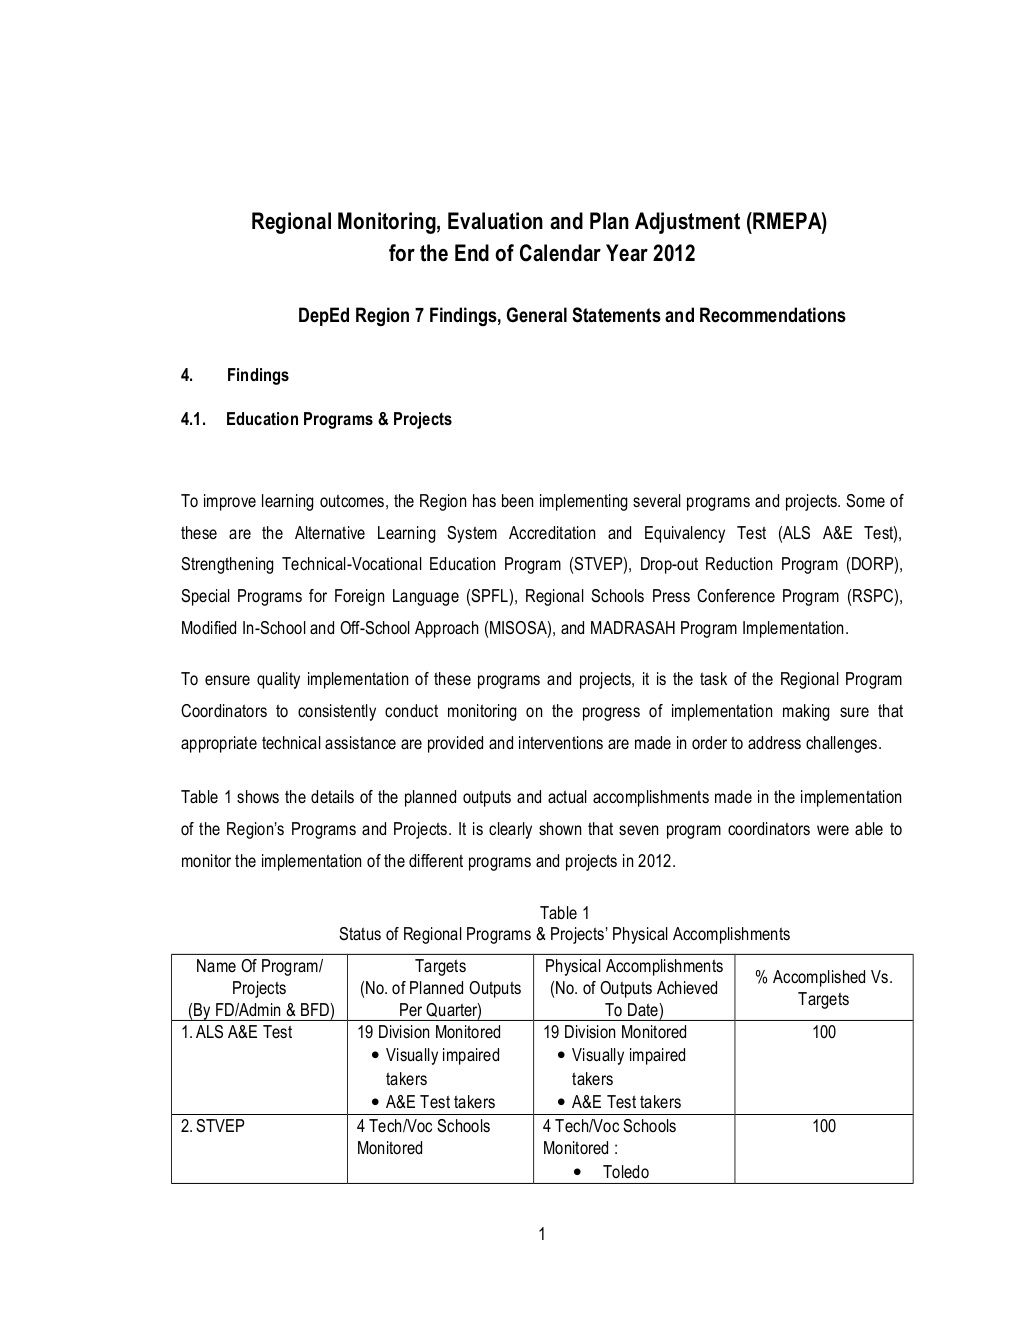 Deped Region  QaadS Report On Regional Monitoring Evaluation